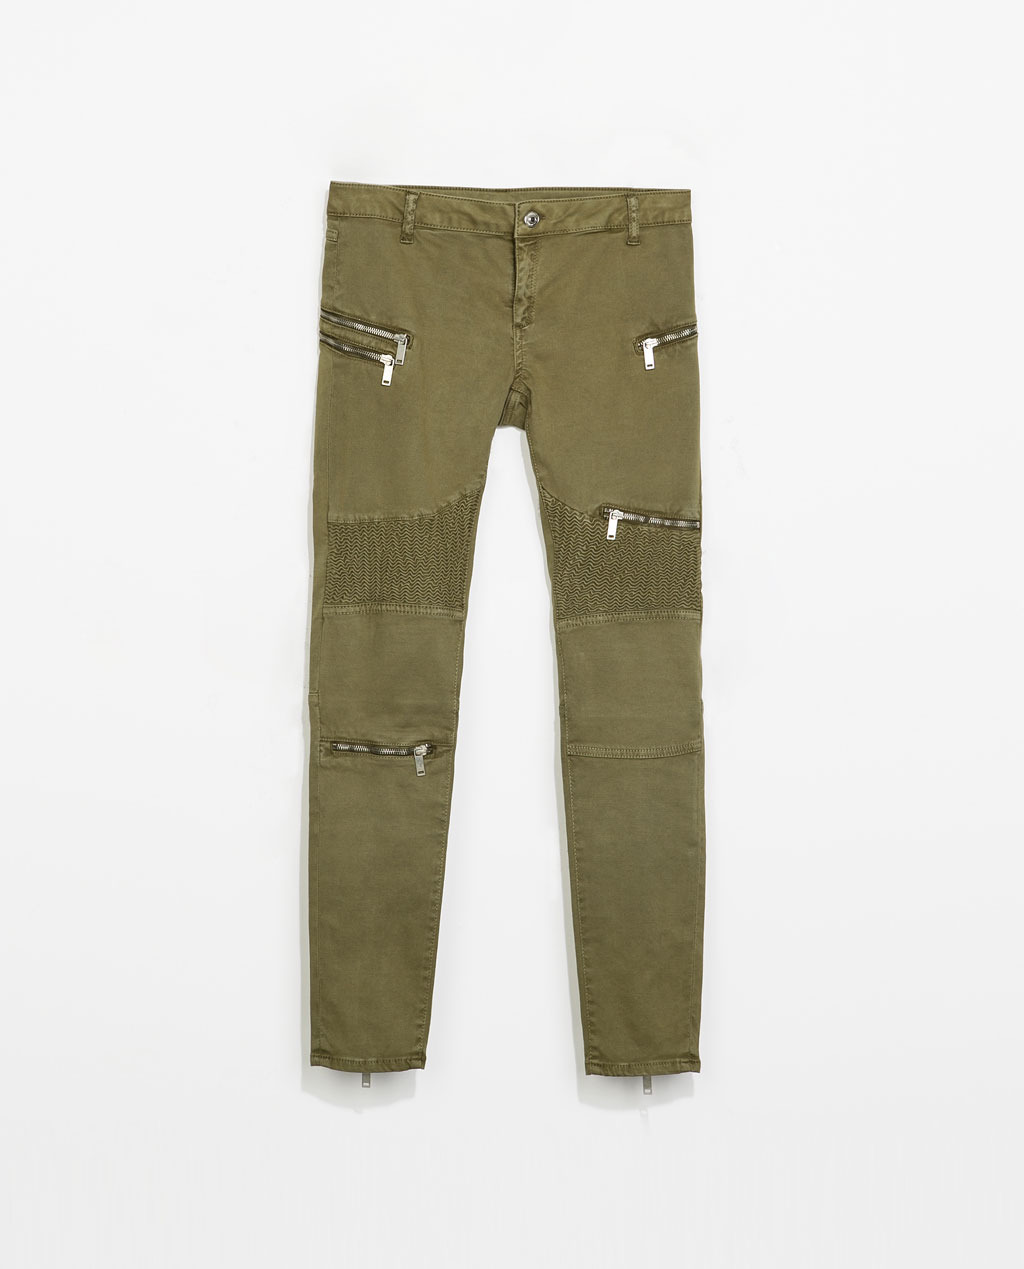 Skinny Biker Trousers - pattern: plain; waist: mid/regular rise; style: cargo; predominant colour: khaki; occasions: casual, creative work; length: ankle length; fibres: cotton - stretch; texture group: cotton feel fabrics; fit: skinny/tight leg; pattern type: fabric; season: s/s 2014